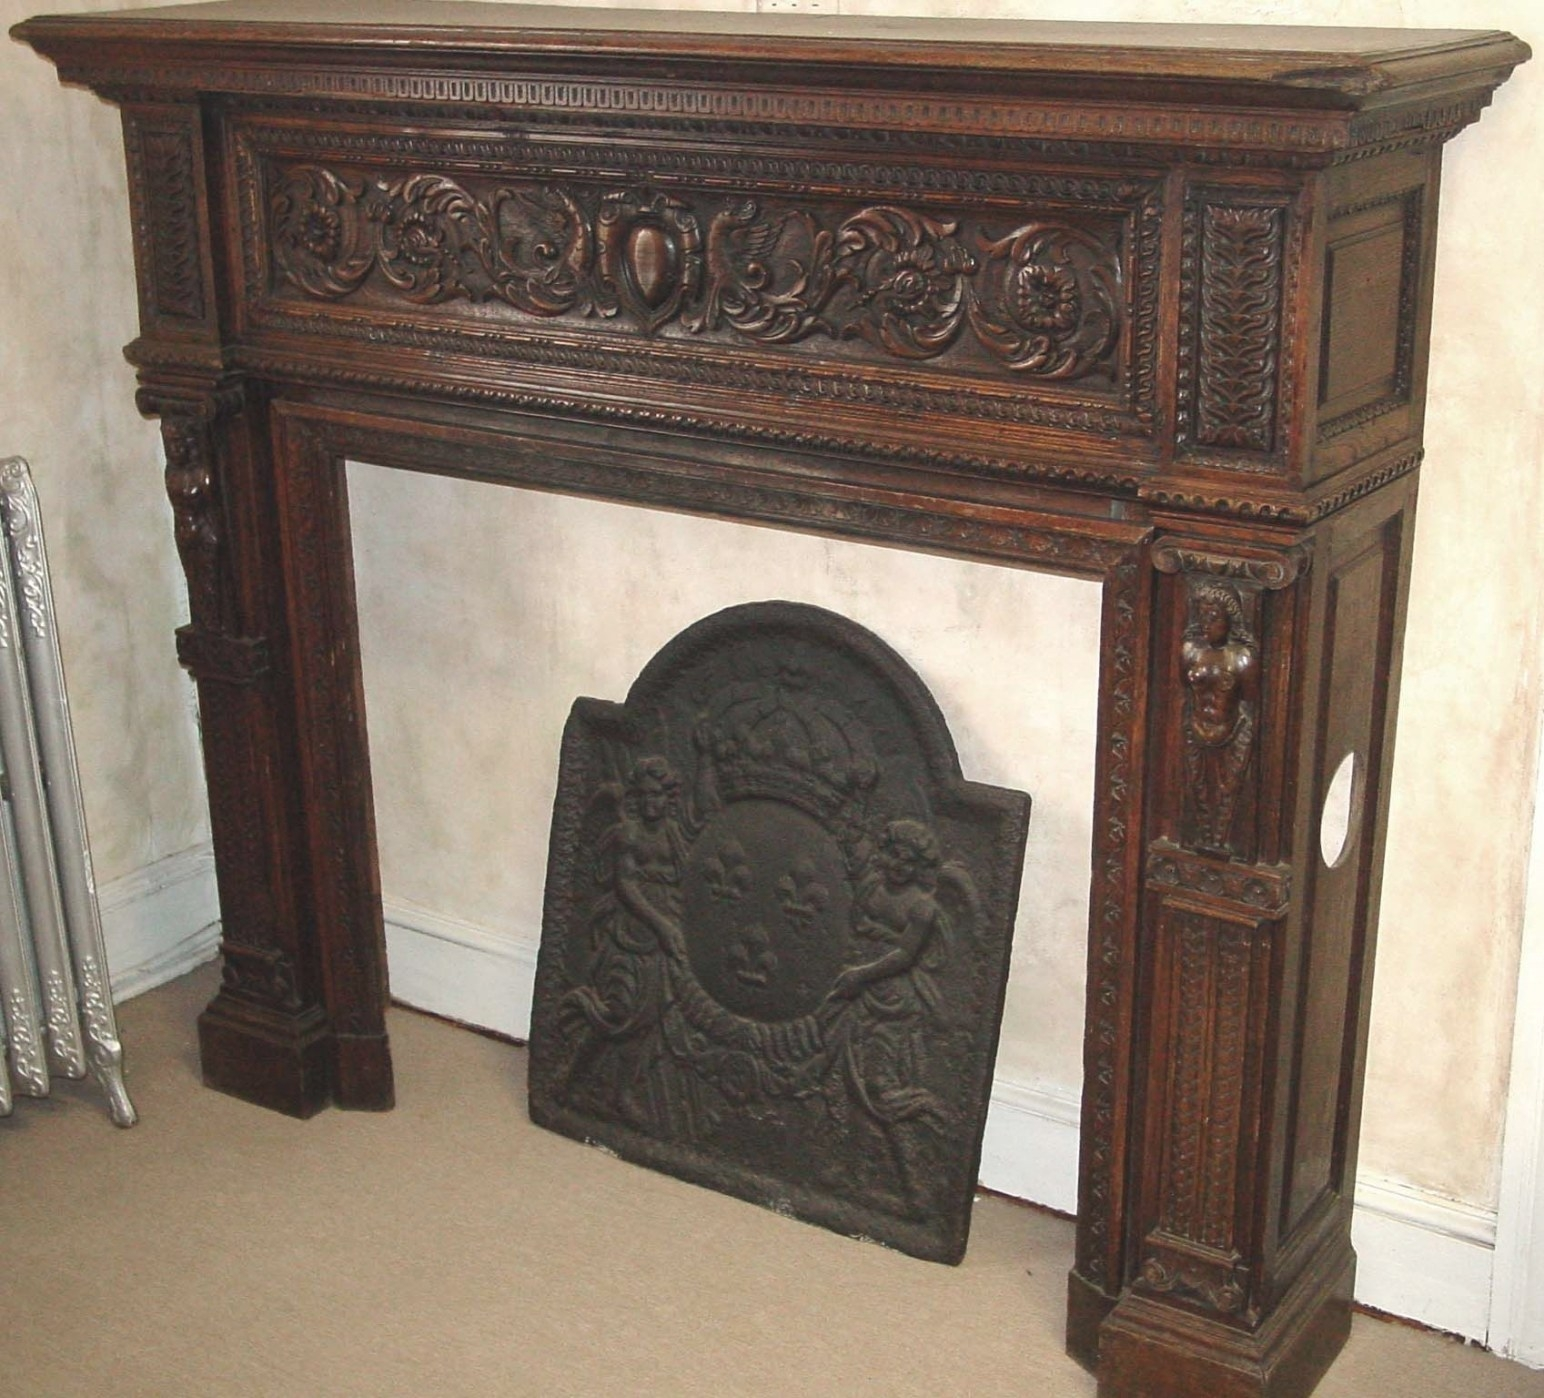 Antique Fireplace Mantels   French, Hand-Carved Wood within Fireplace Mantels For Sale